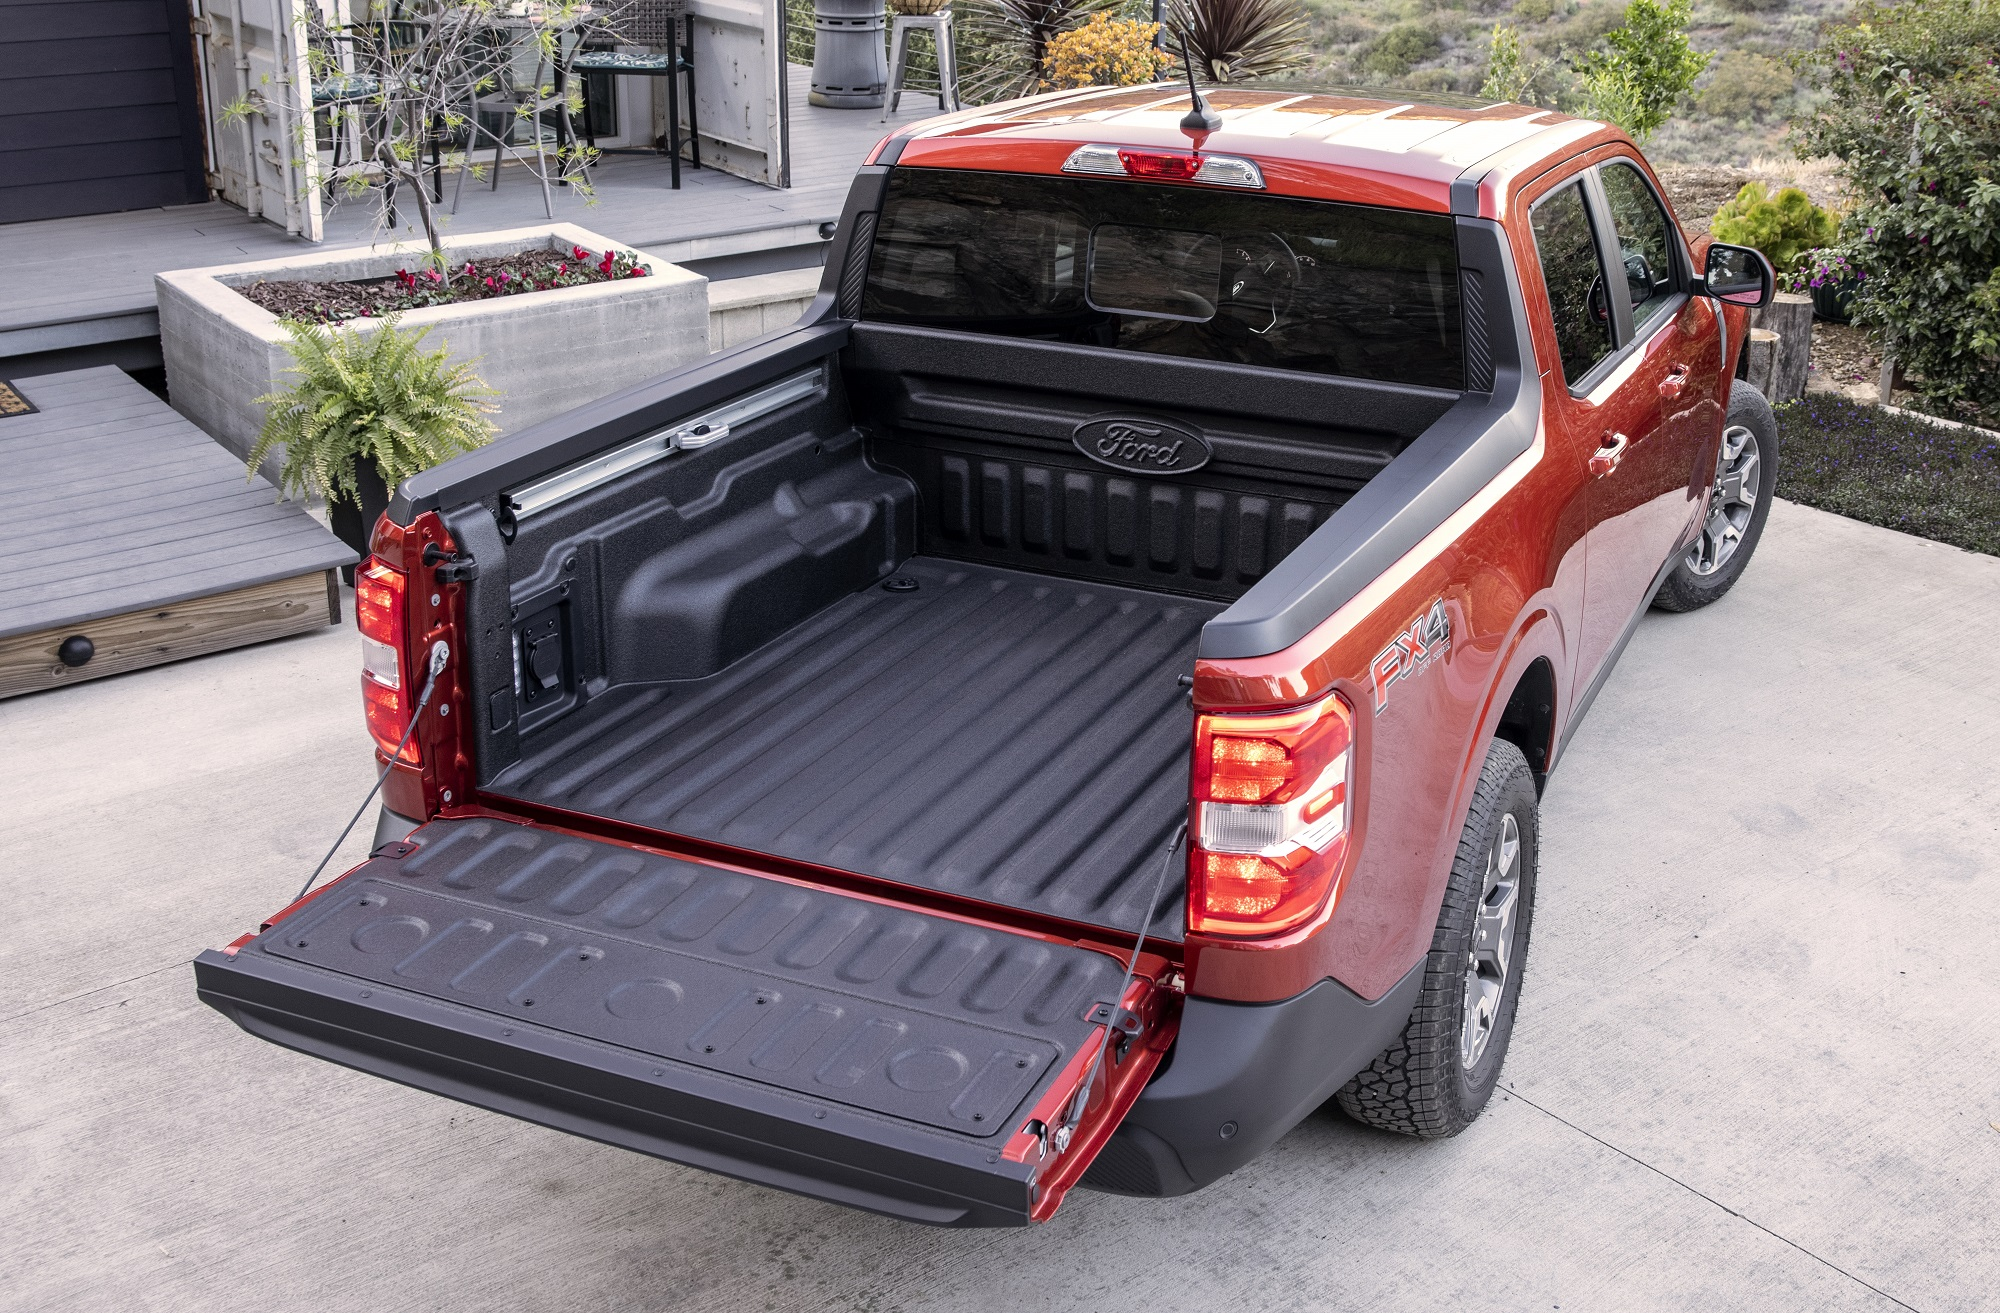 2022 Ford Maverick FLEXBED™. Preproduction vehicle with optional equipment shown. Available fall 2021.